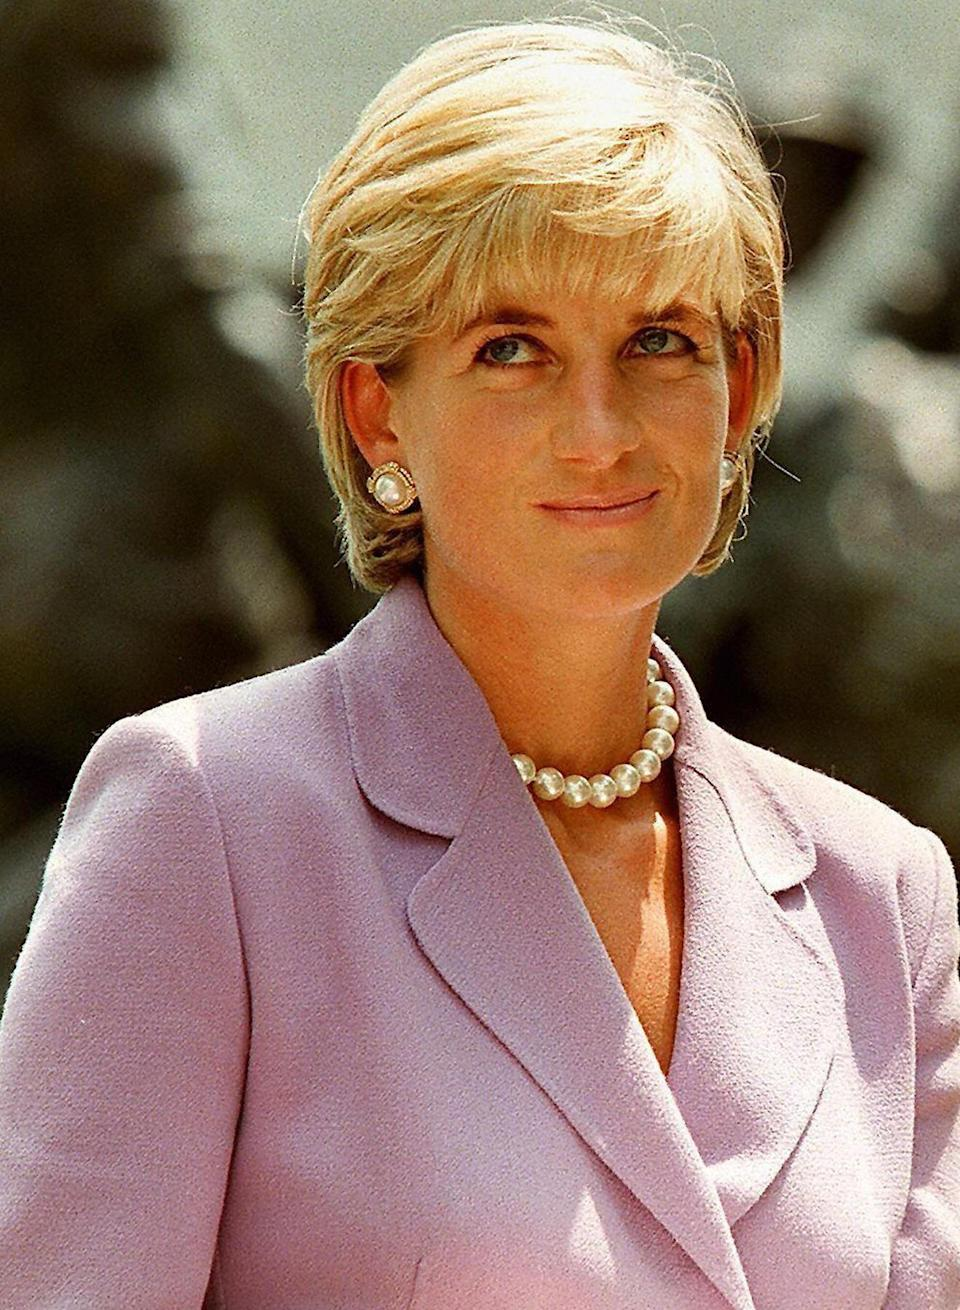 """Diana: The Interview that Shocked the World"" was scheduled to premiere April 11, 2021, but has been pushed back to an undisclosed date, Netflix confirmed."